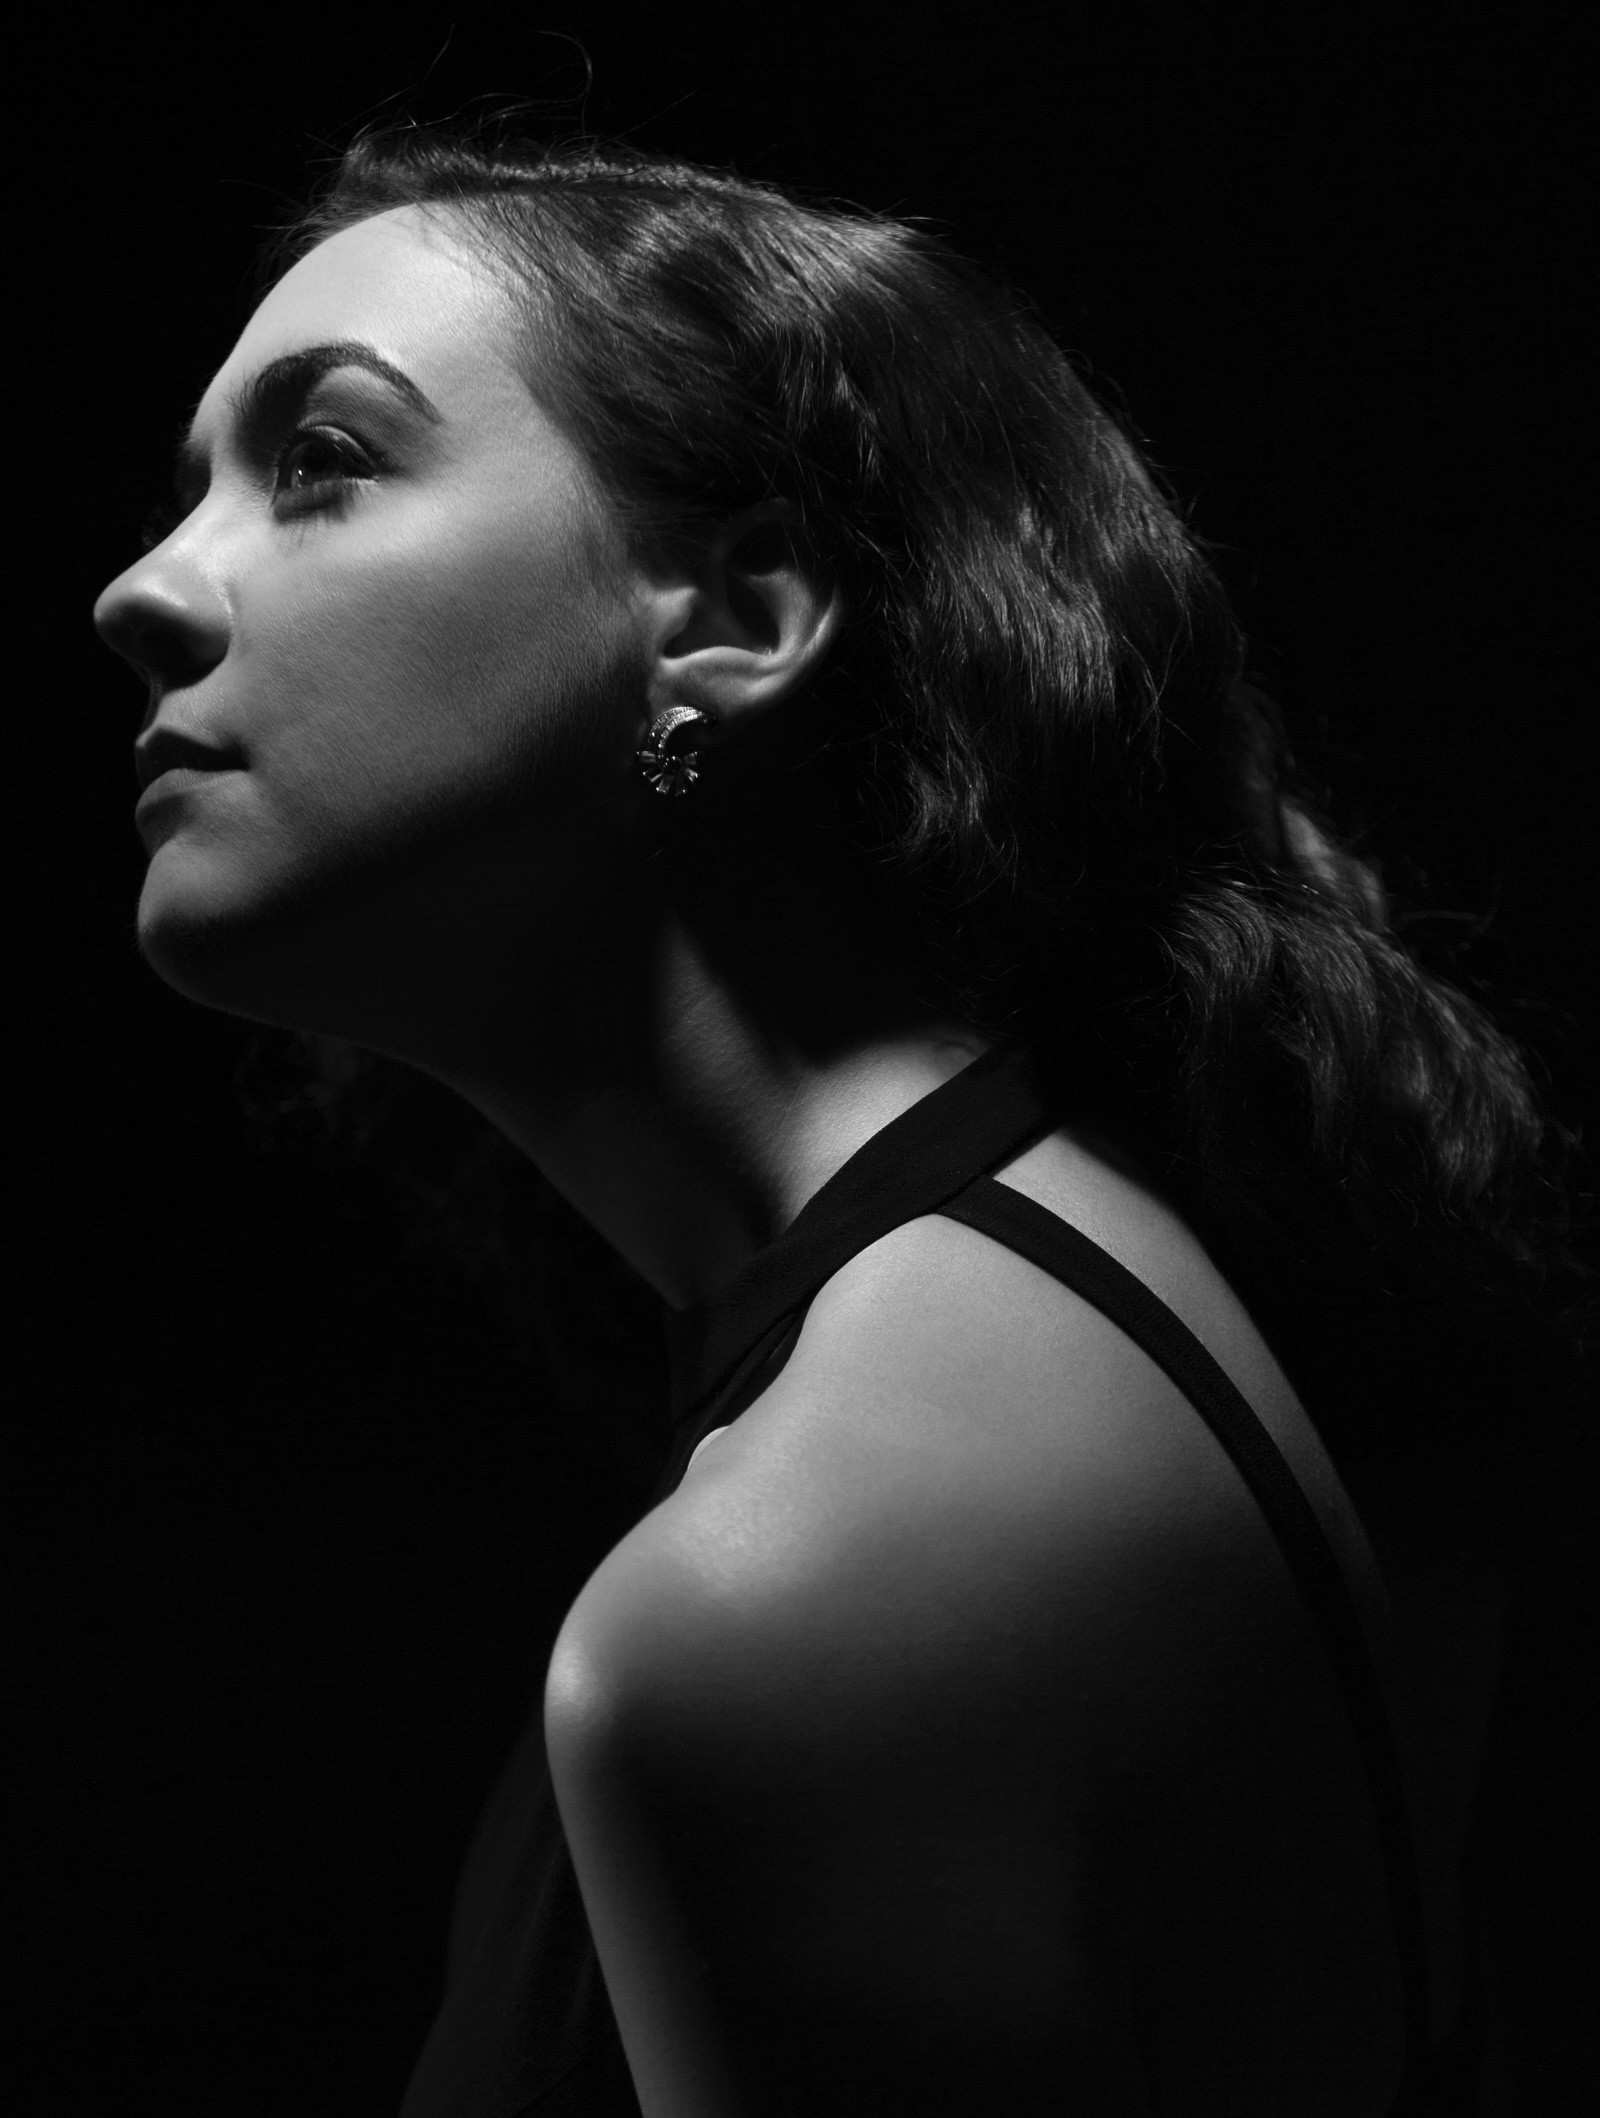 In this black and white portrait, Kathleen Granados is seen in profile, lit from above.